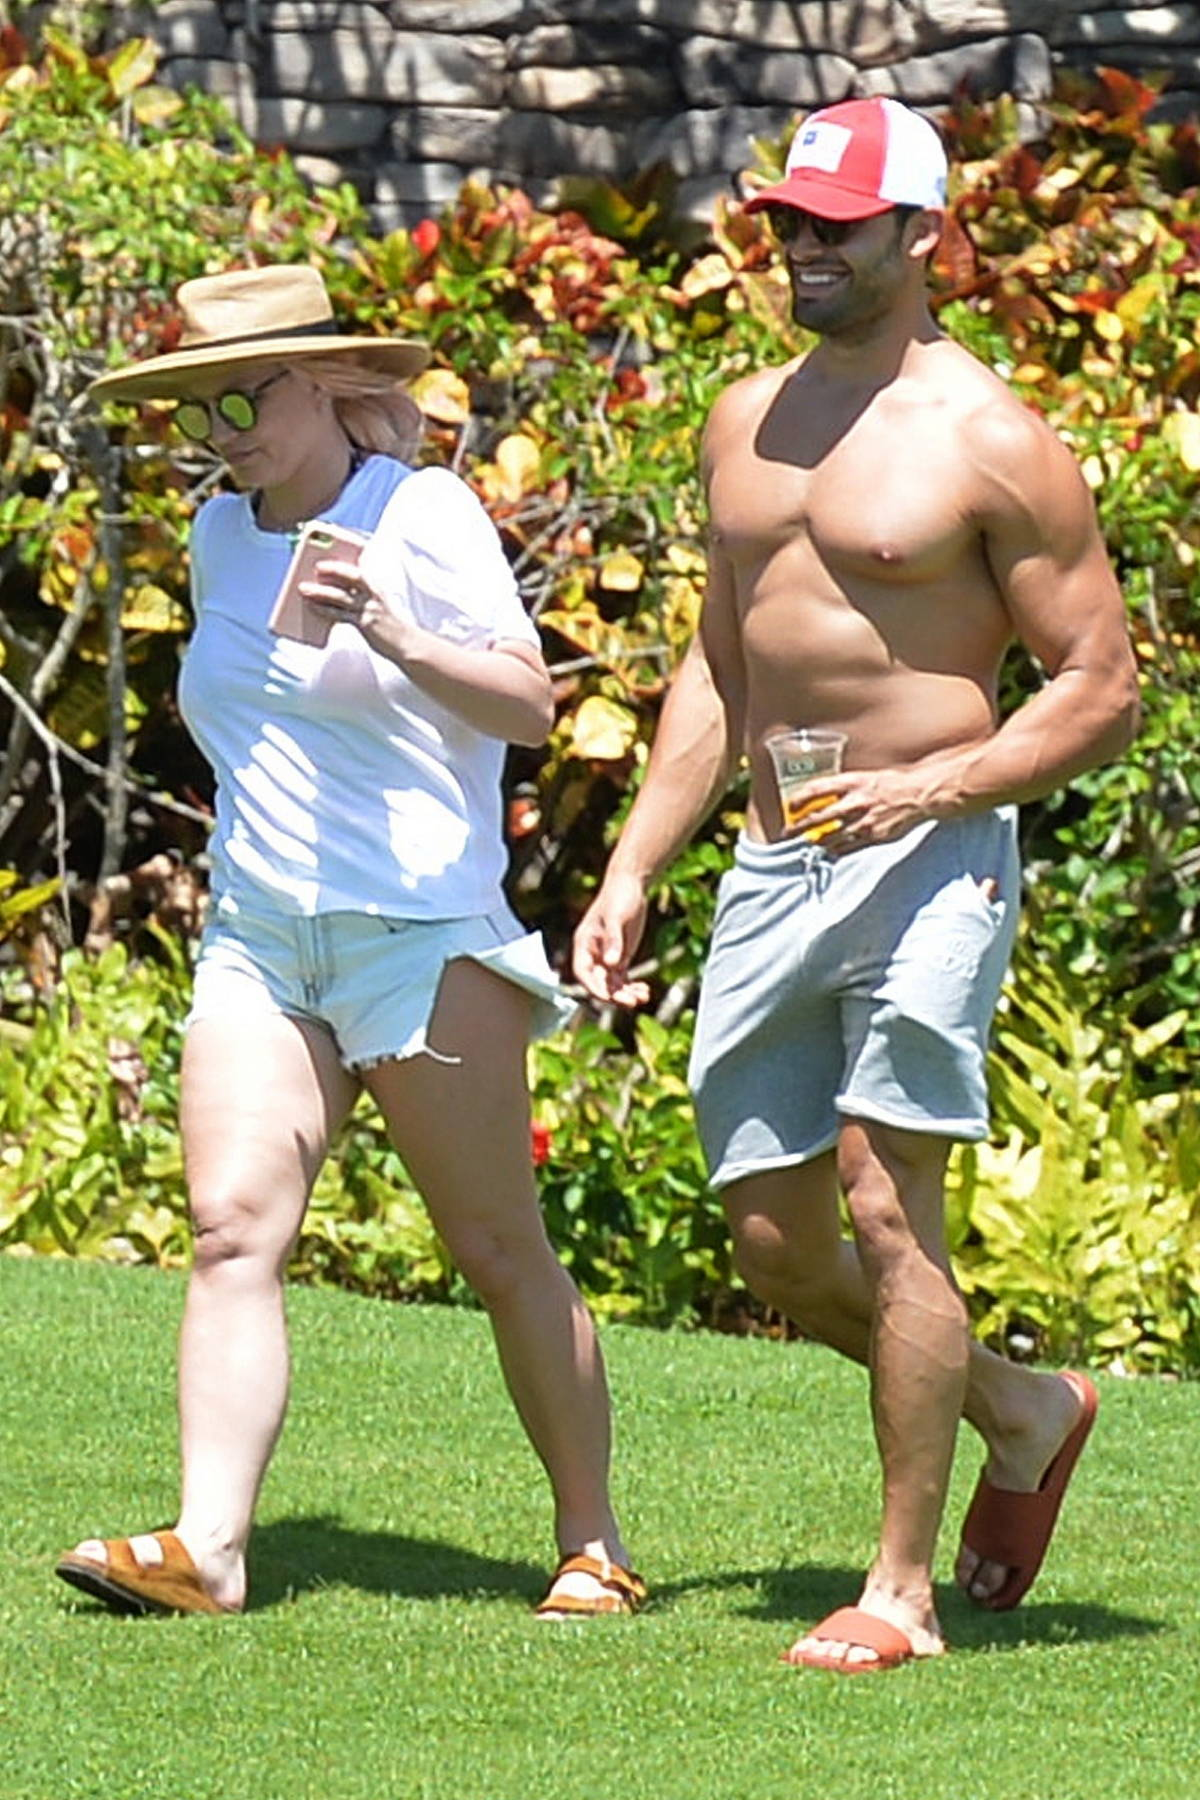 Britney Spears looks happy and relaxed as she enjoys a couples getaway with boyfriend Sam Asghari in Maui, Hawaii